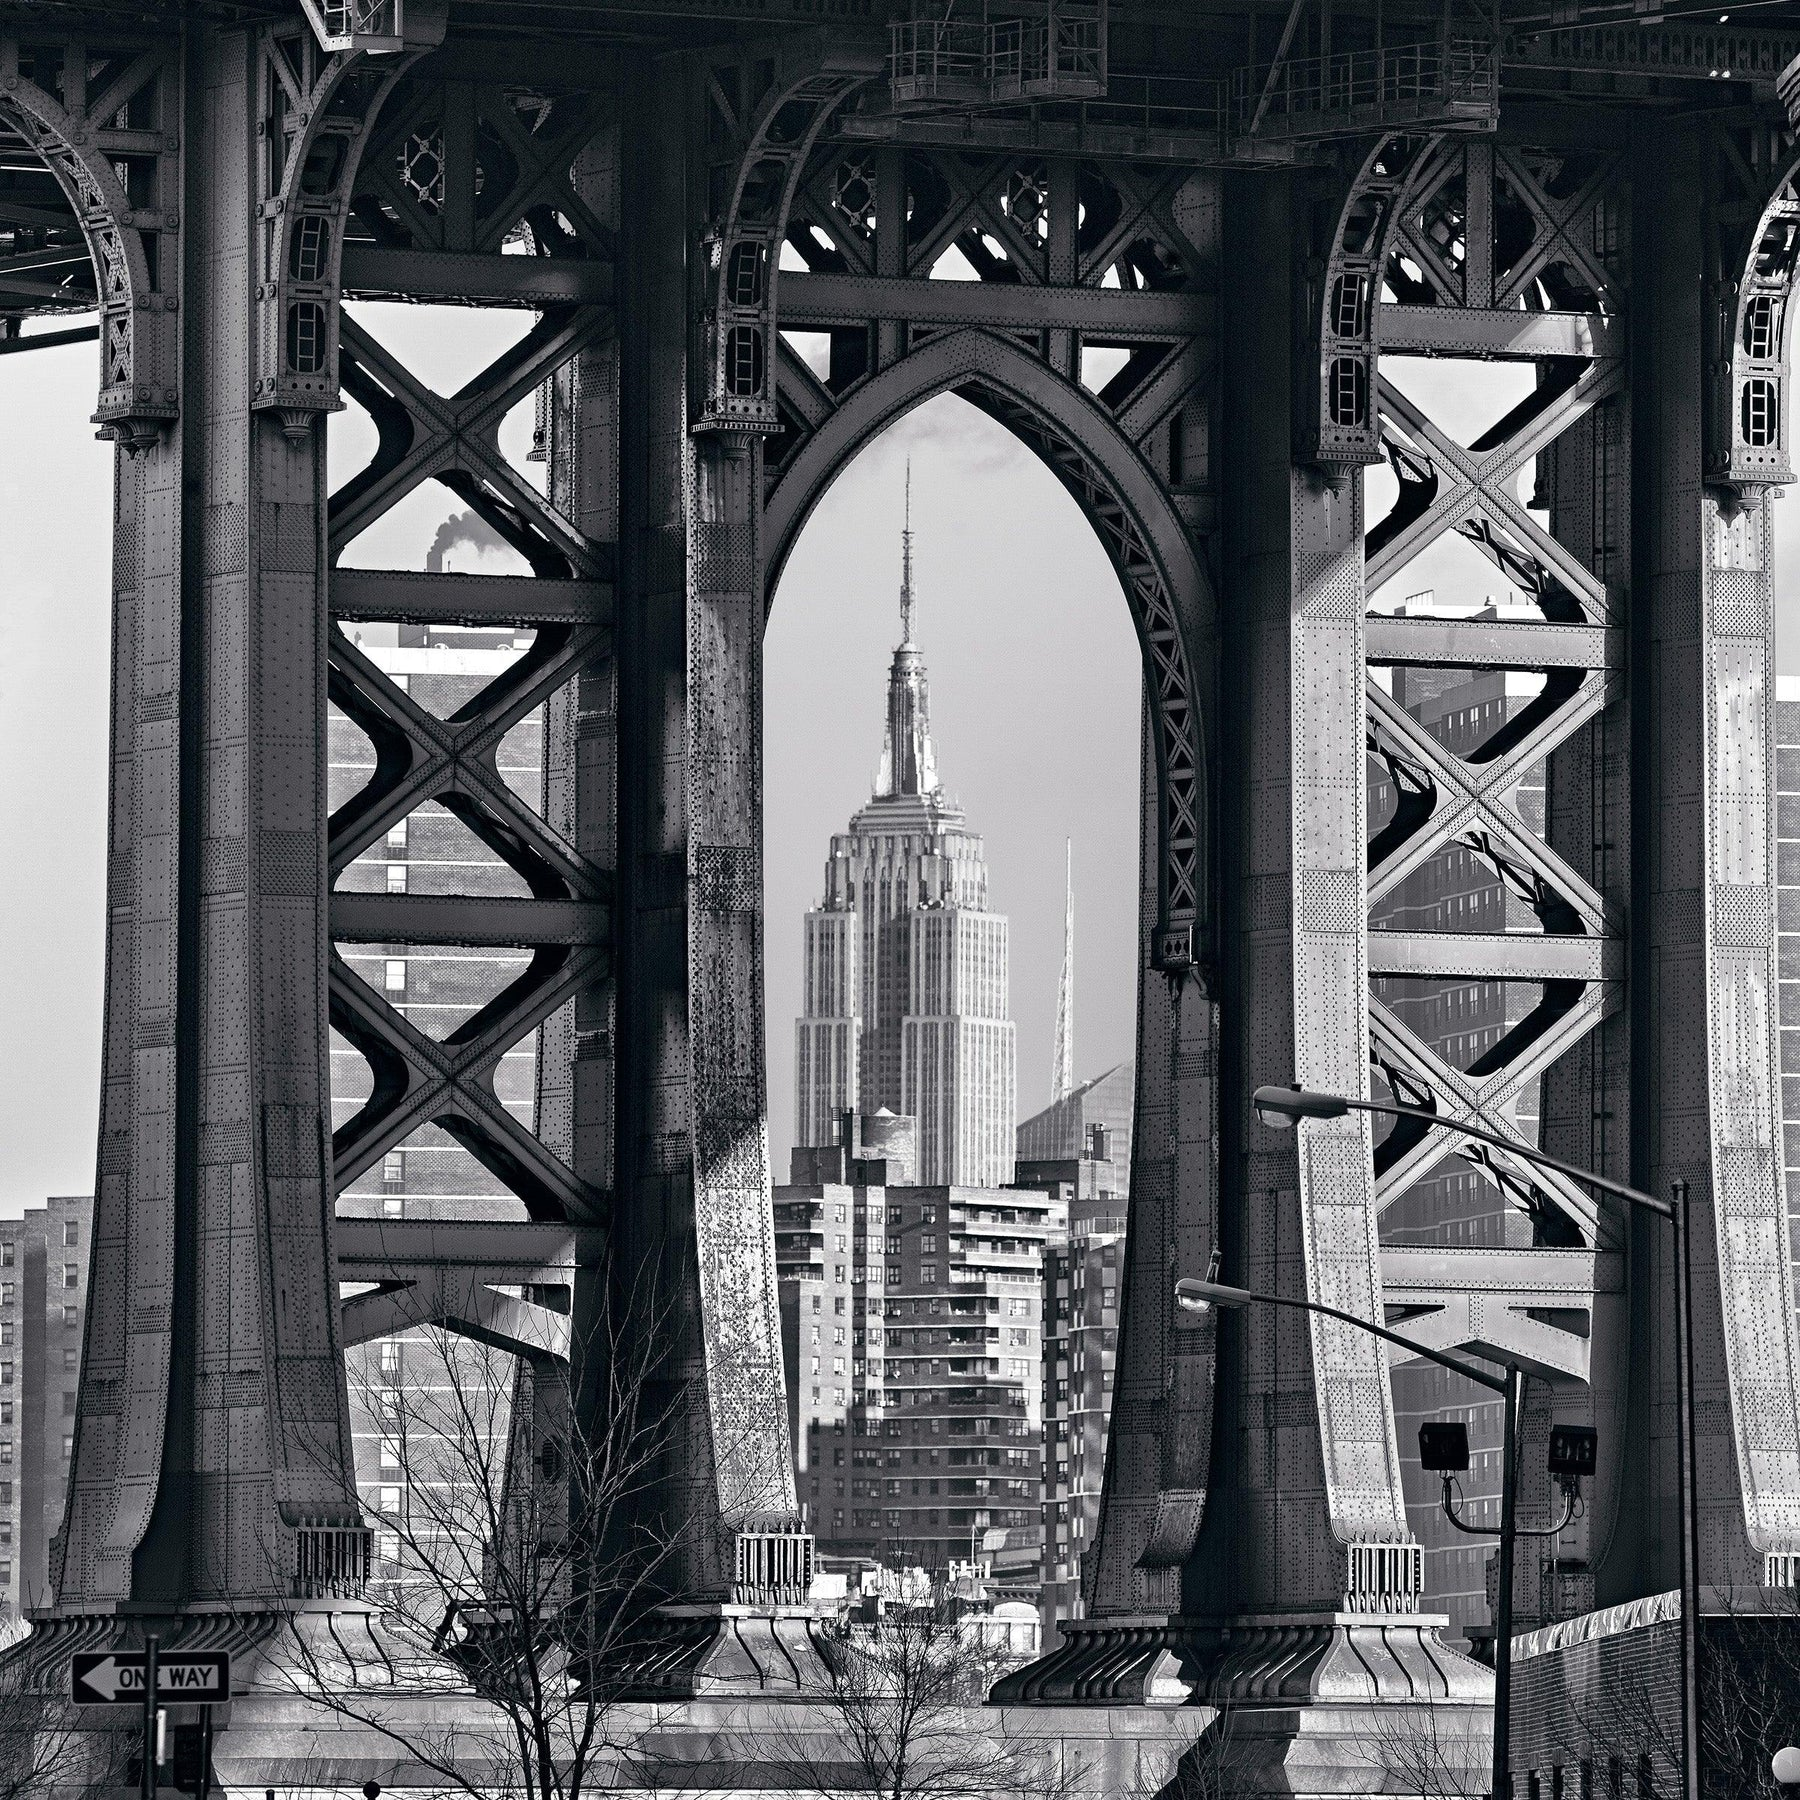 Black and white of the Empire State Building framed within the arches under the Manhattan Bridge New York